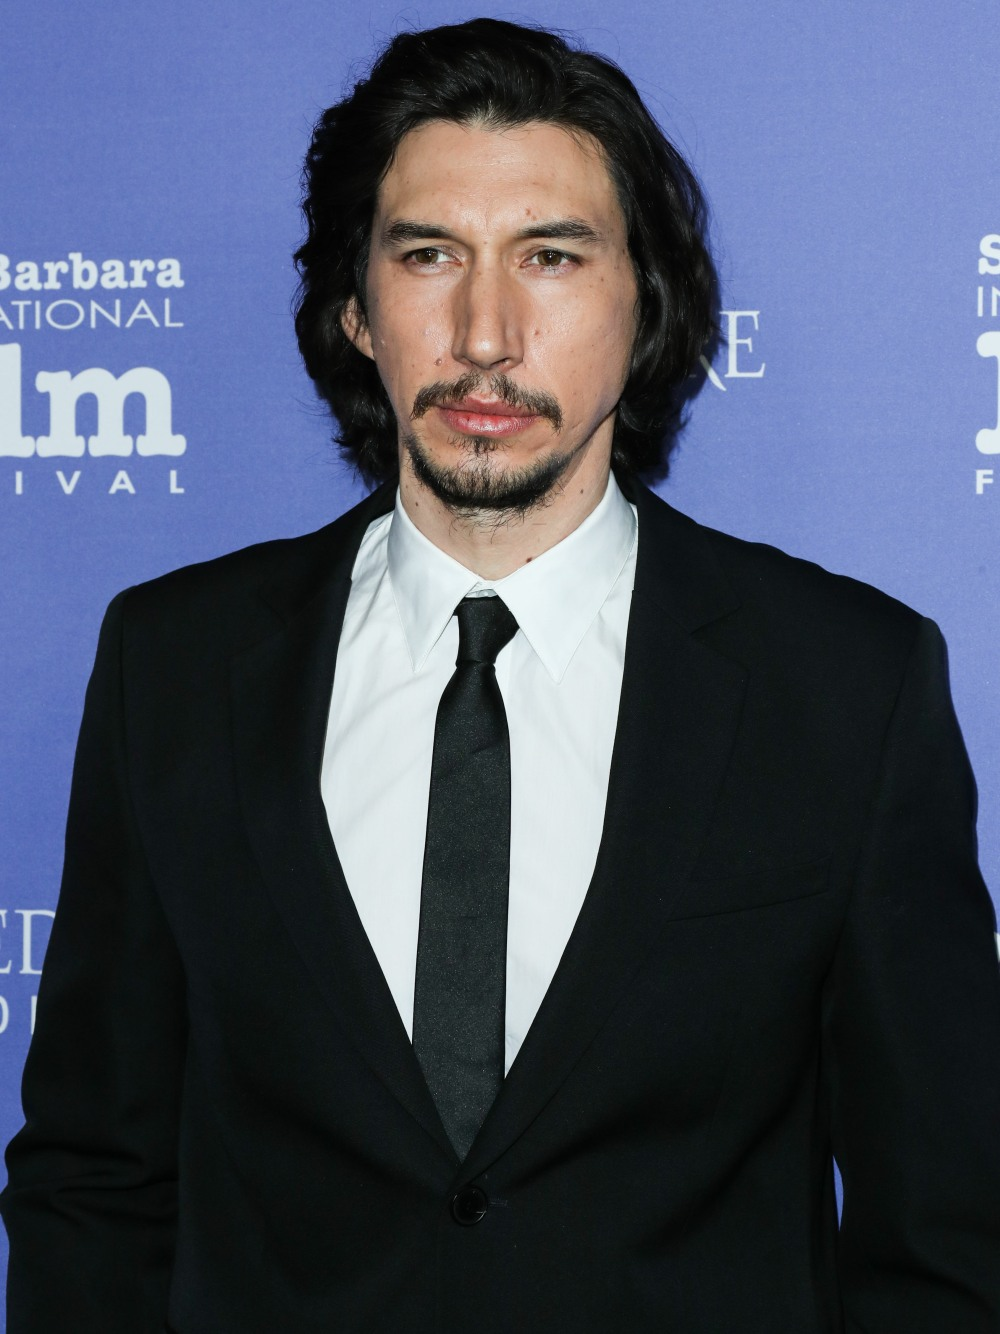 Actor Adam Driver arrives at the 35th Annual Santa Barbara International Film Festival - The Outstanding Performers Of The Year Award held at The Arlington Theatre (Metropolitan Theatres) on January 17, 2020 in Santa Barbara, Los Angeles, California, Unit